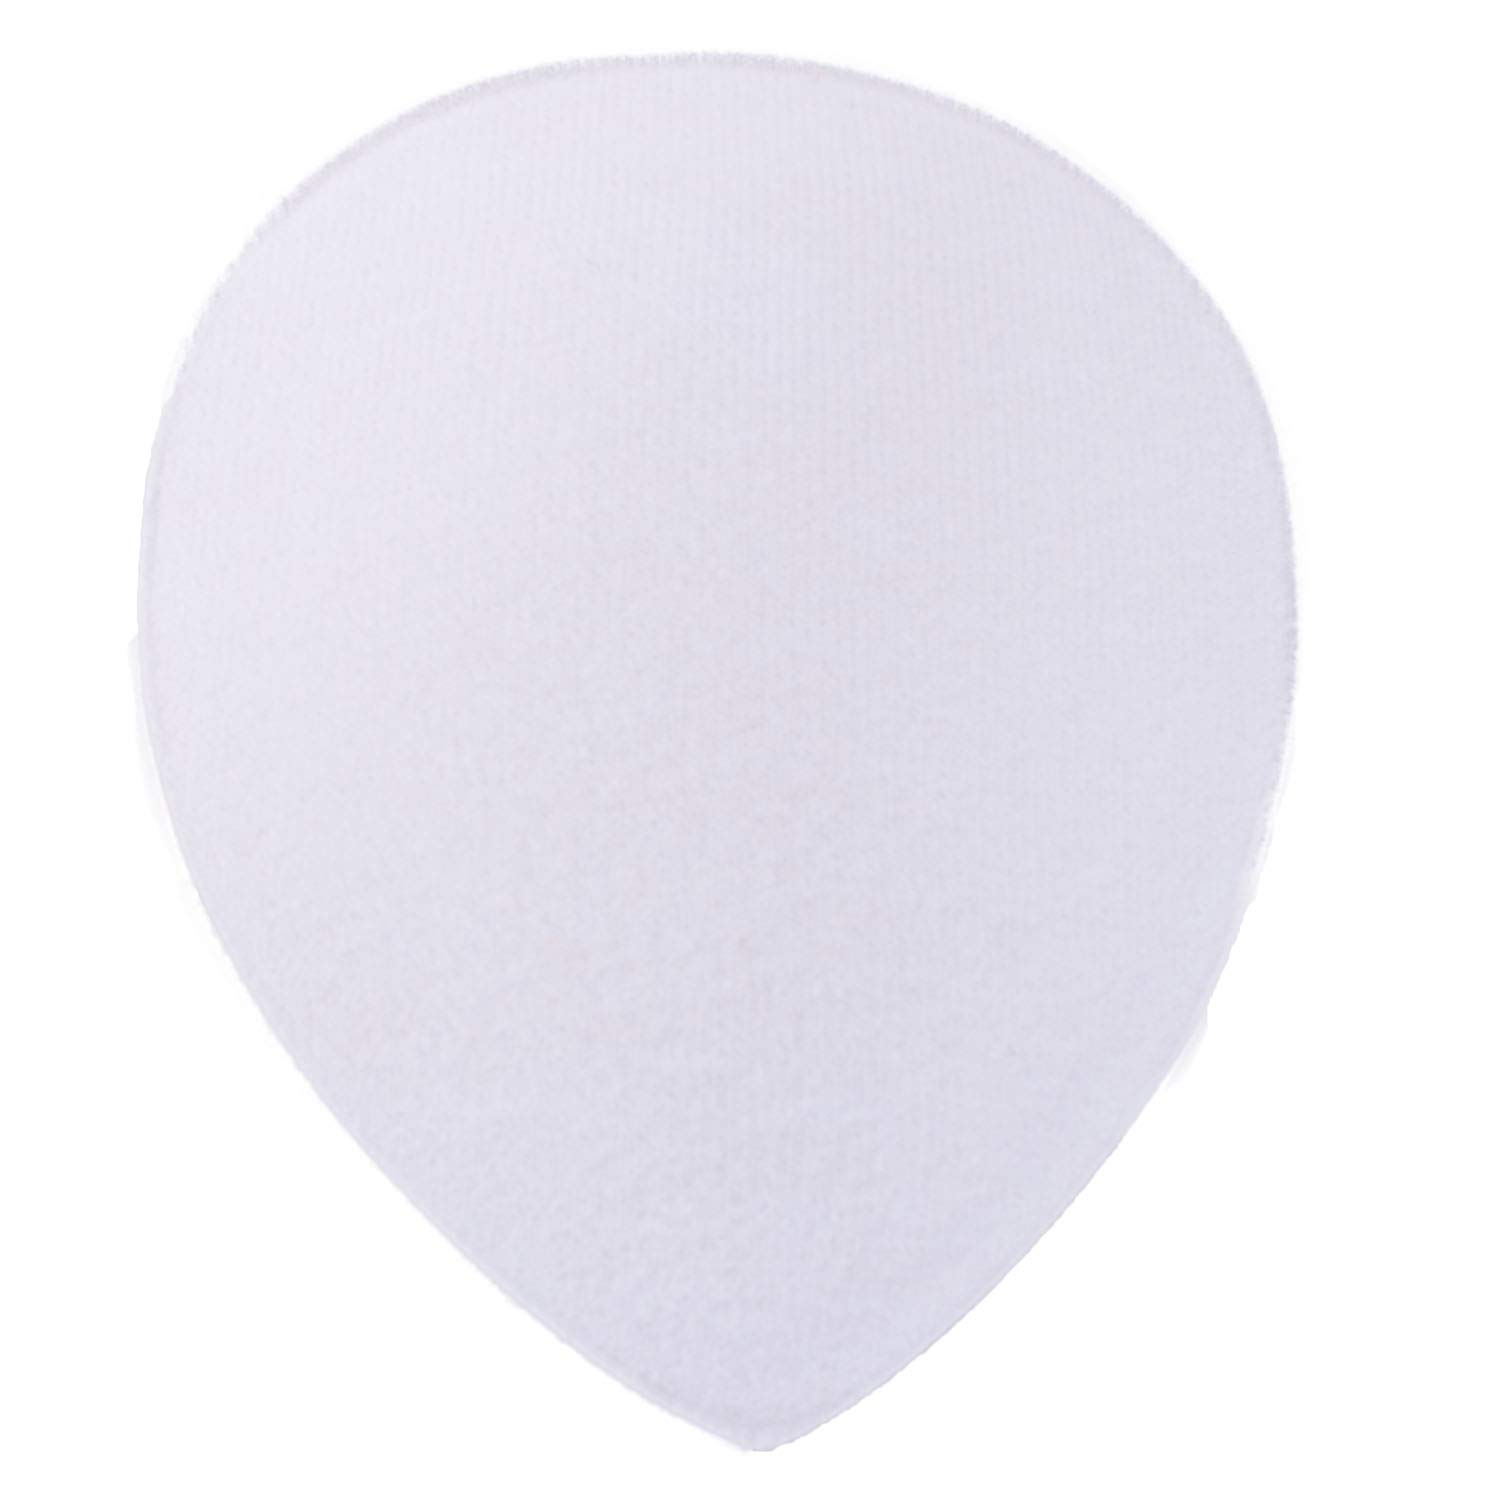 Lawliet Teardrop Hat Fascinator Millinery Base Craft Material Supply B005 (White)